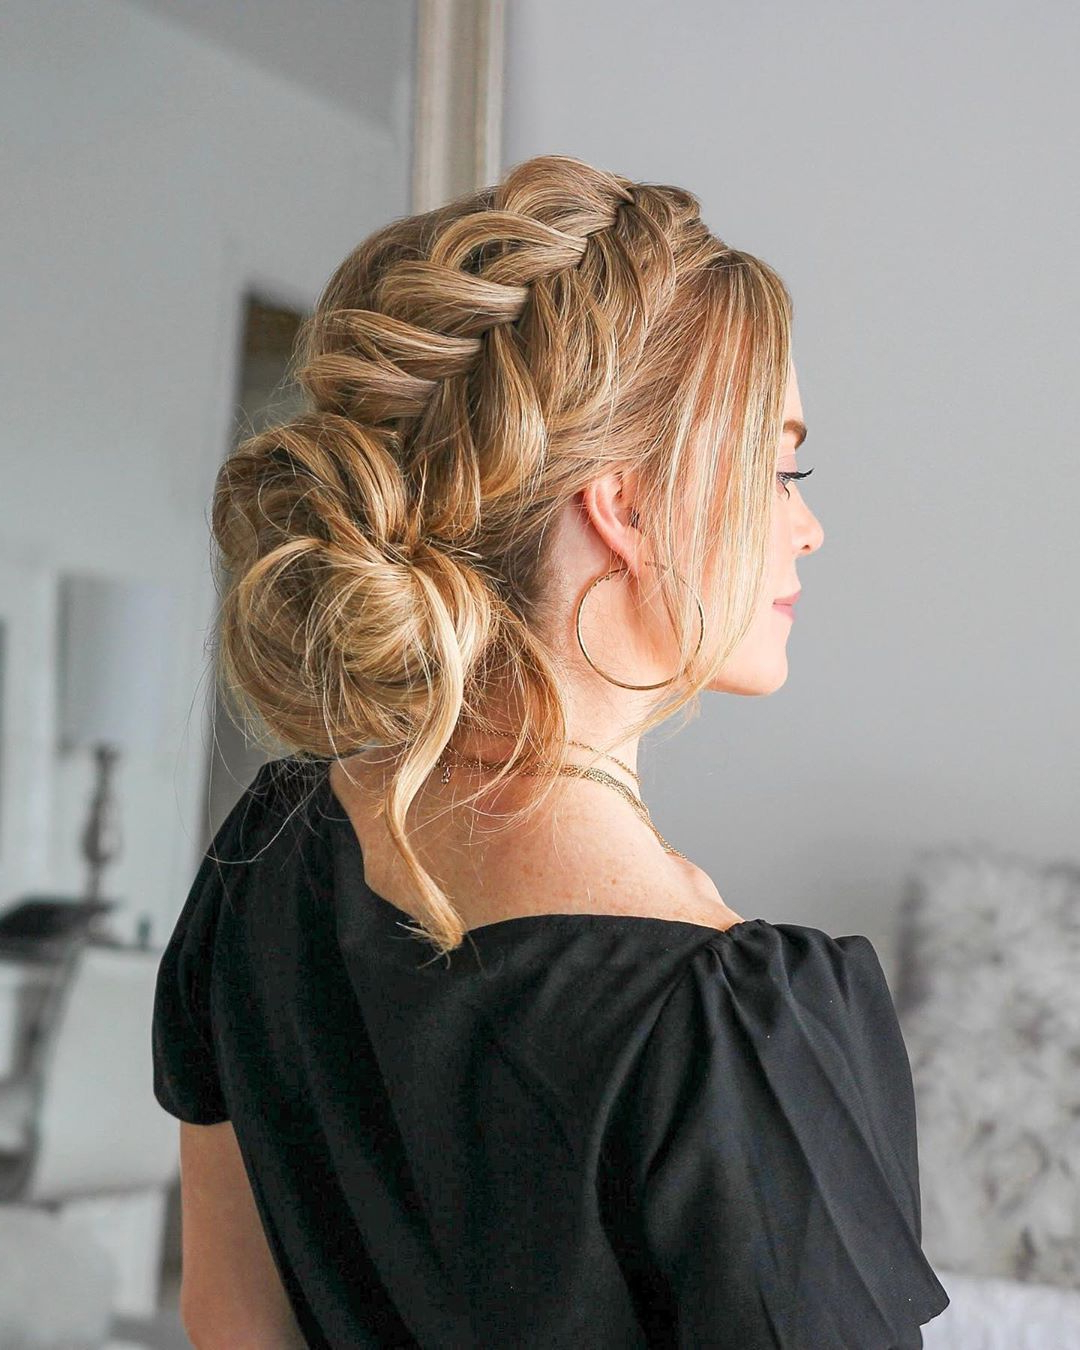 Favorite Modern Braided Top Knot Hairstyles Inside 10 Beautiful Braided Updo Hairstyles For Women – Modern Updo (View 8 of 20)